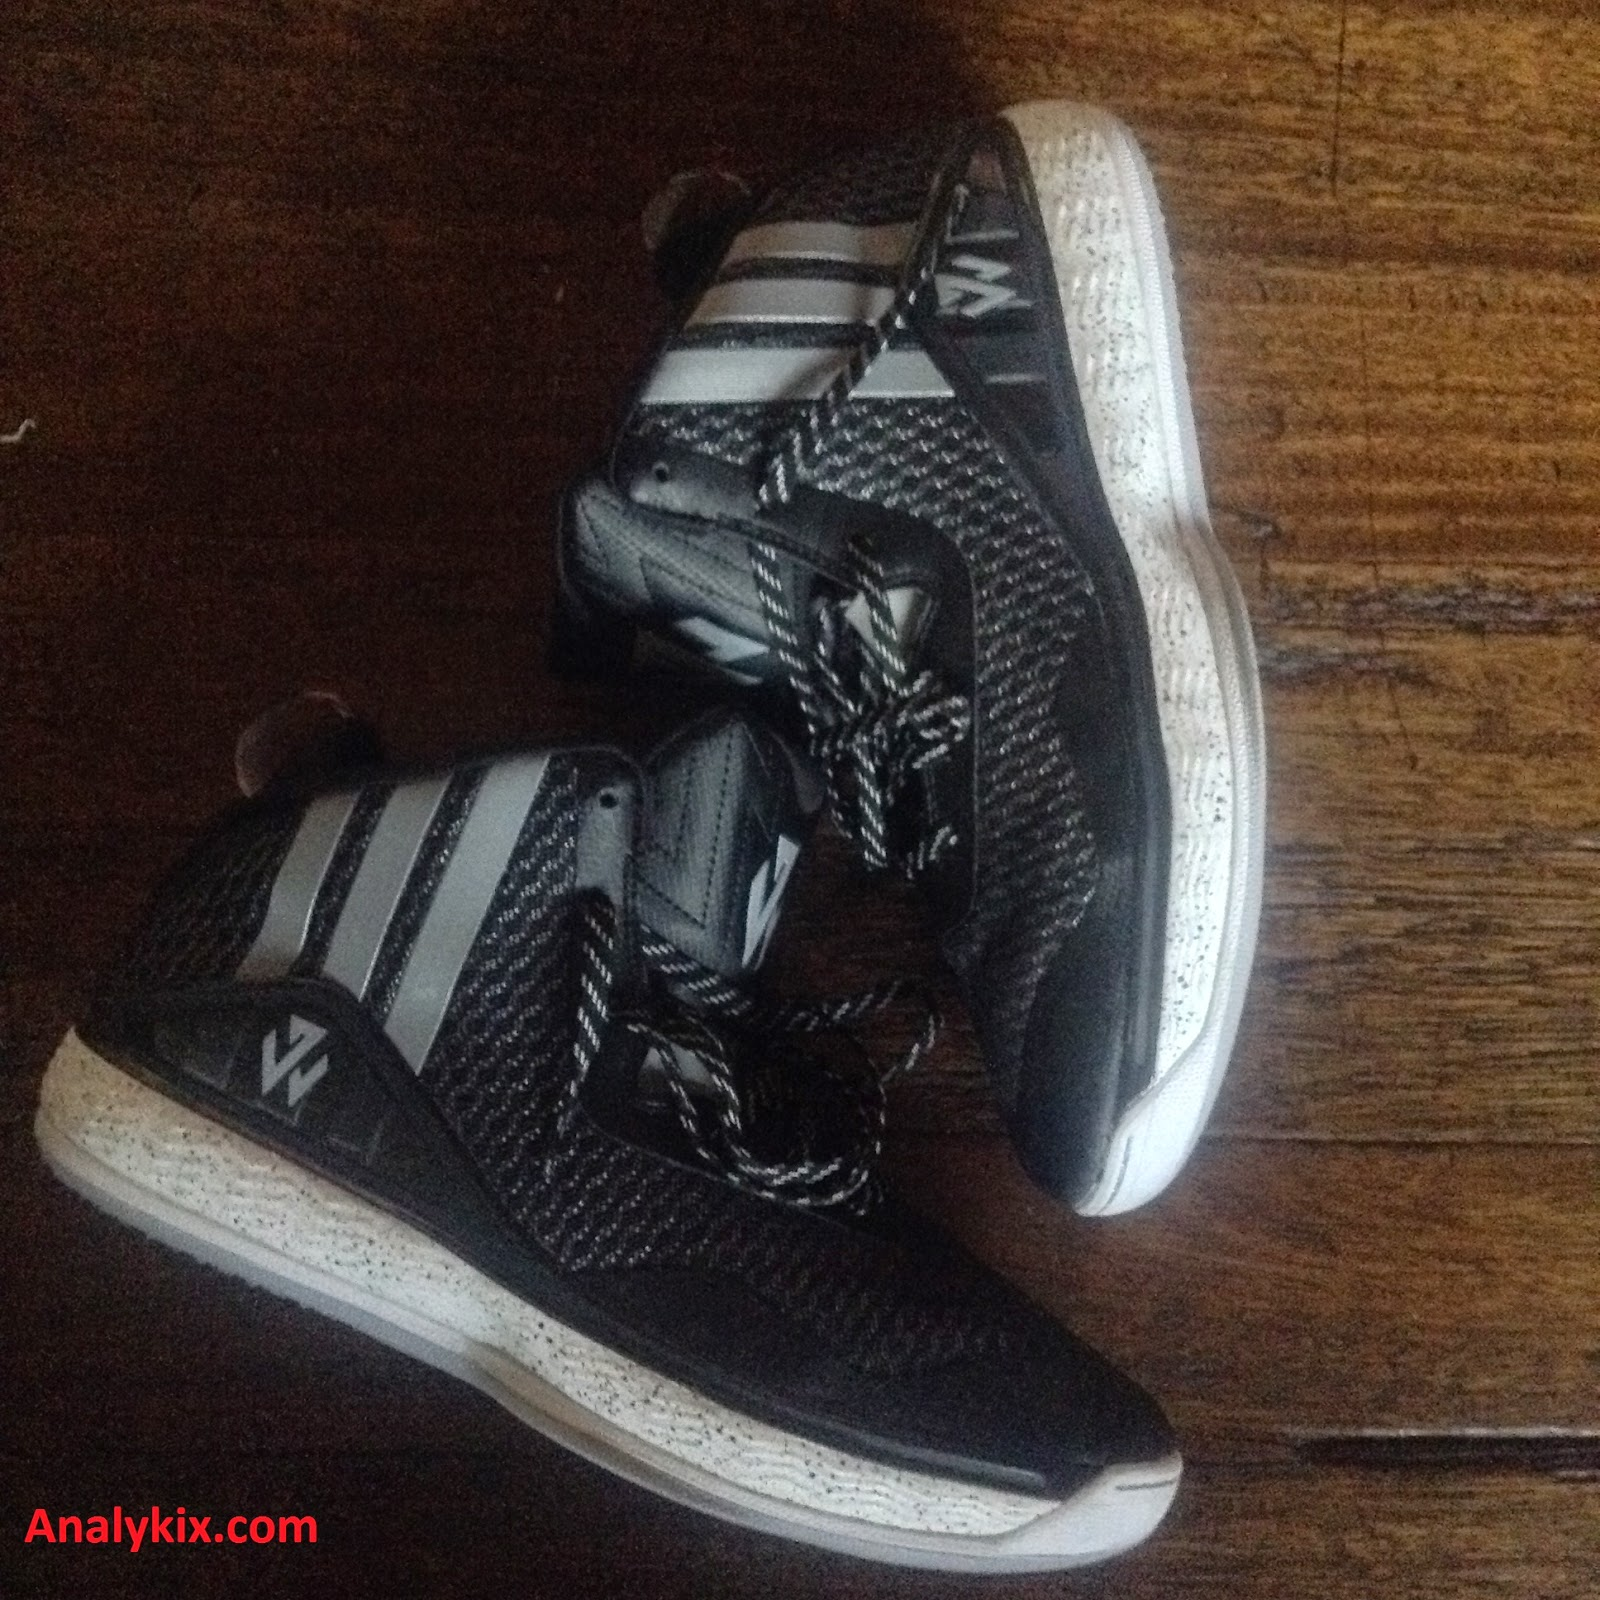 Performance Review Adidas Analykix J Wall 1 | Analykix Adidas 64bb88